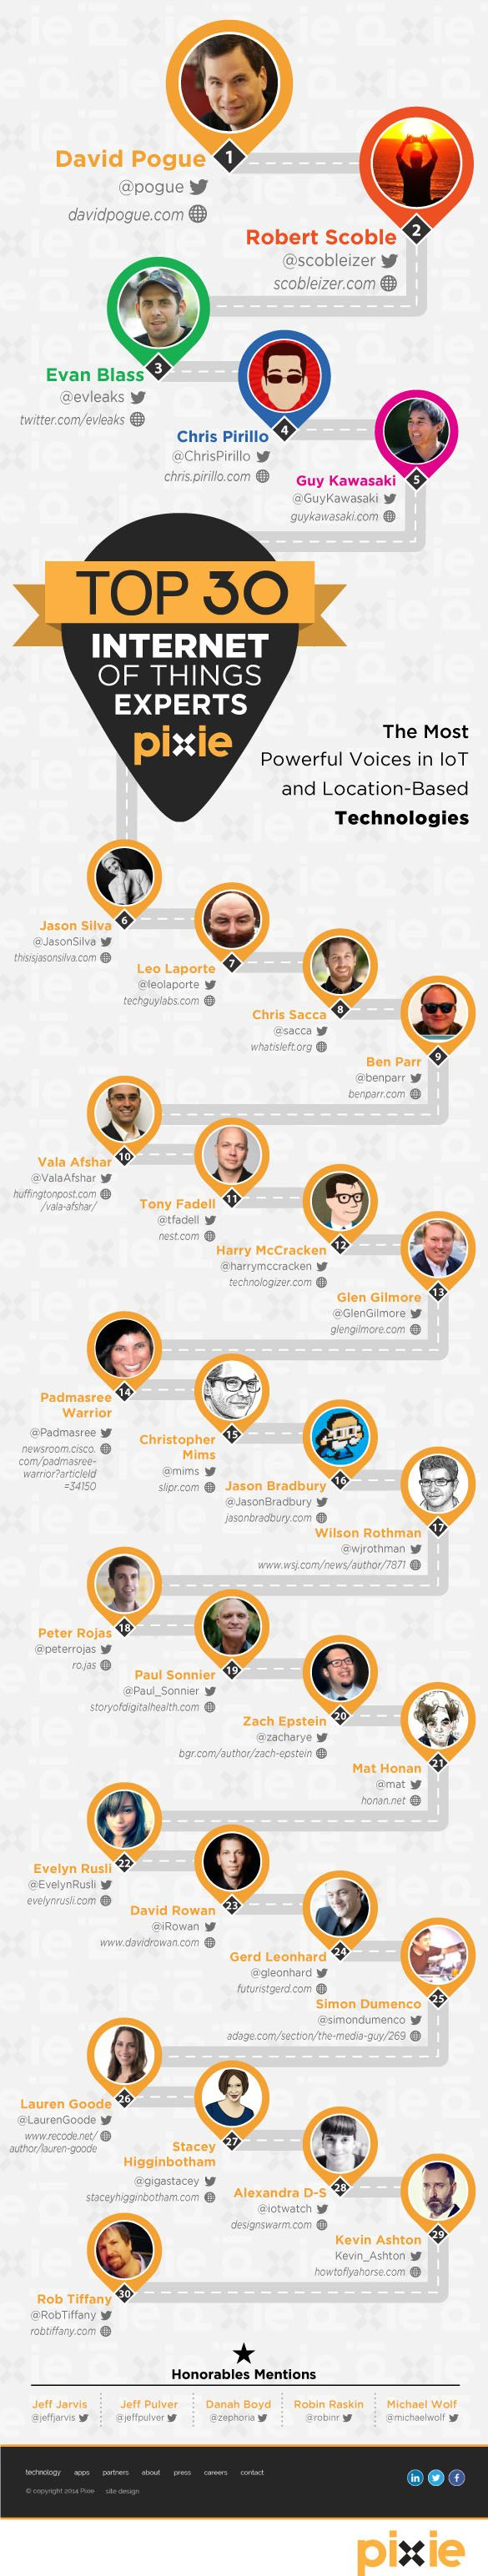 The Top 30 Internet of Things Experts